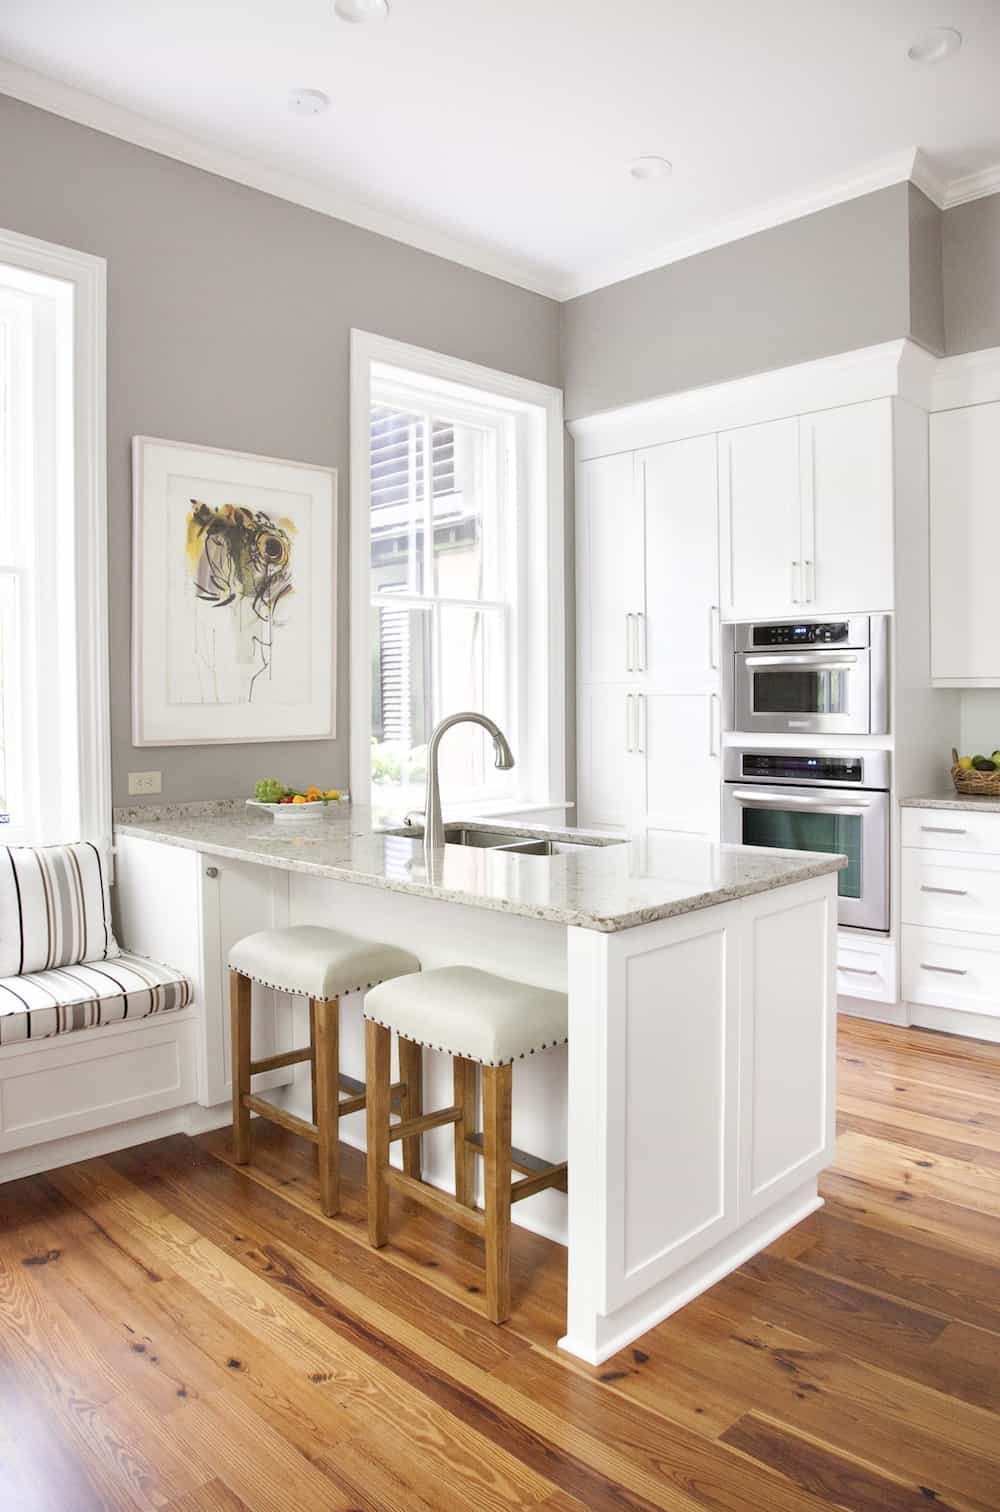 Elegant kitchen peninsula with a built-in window seat